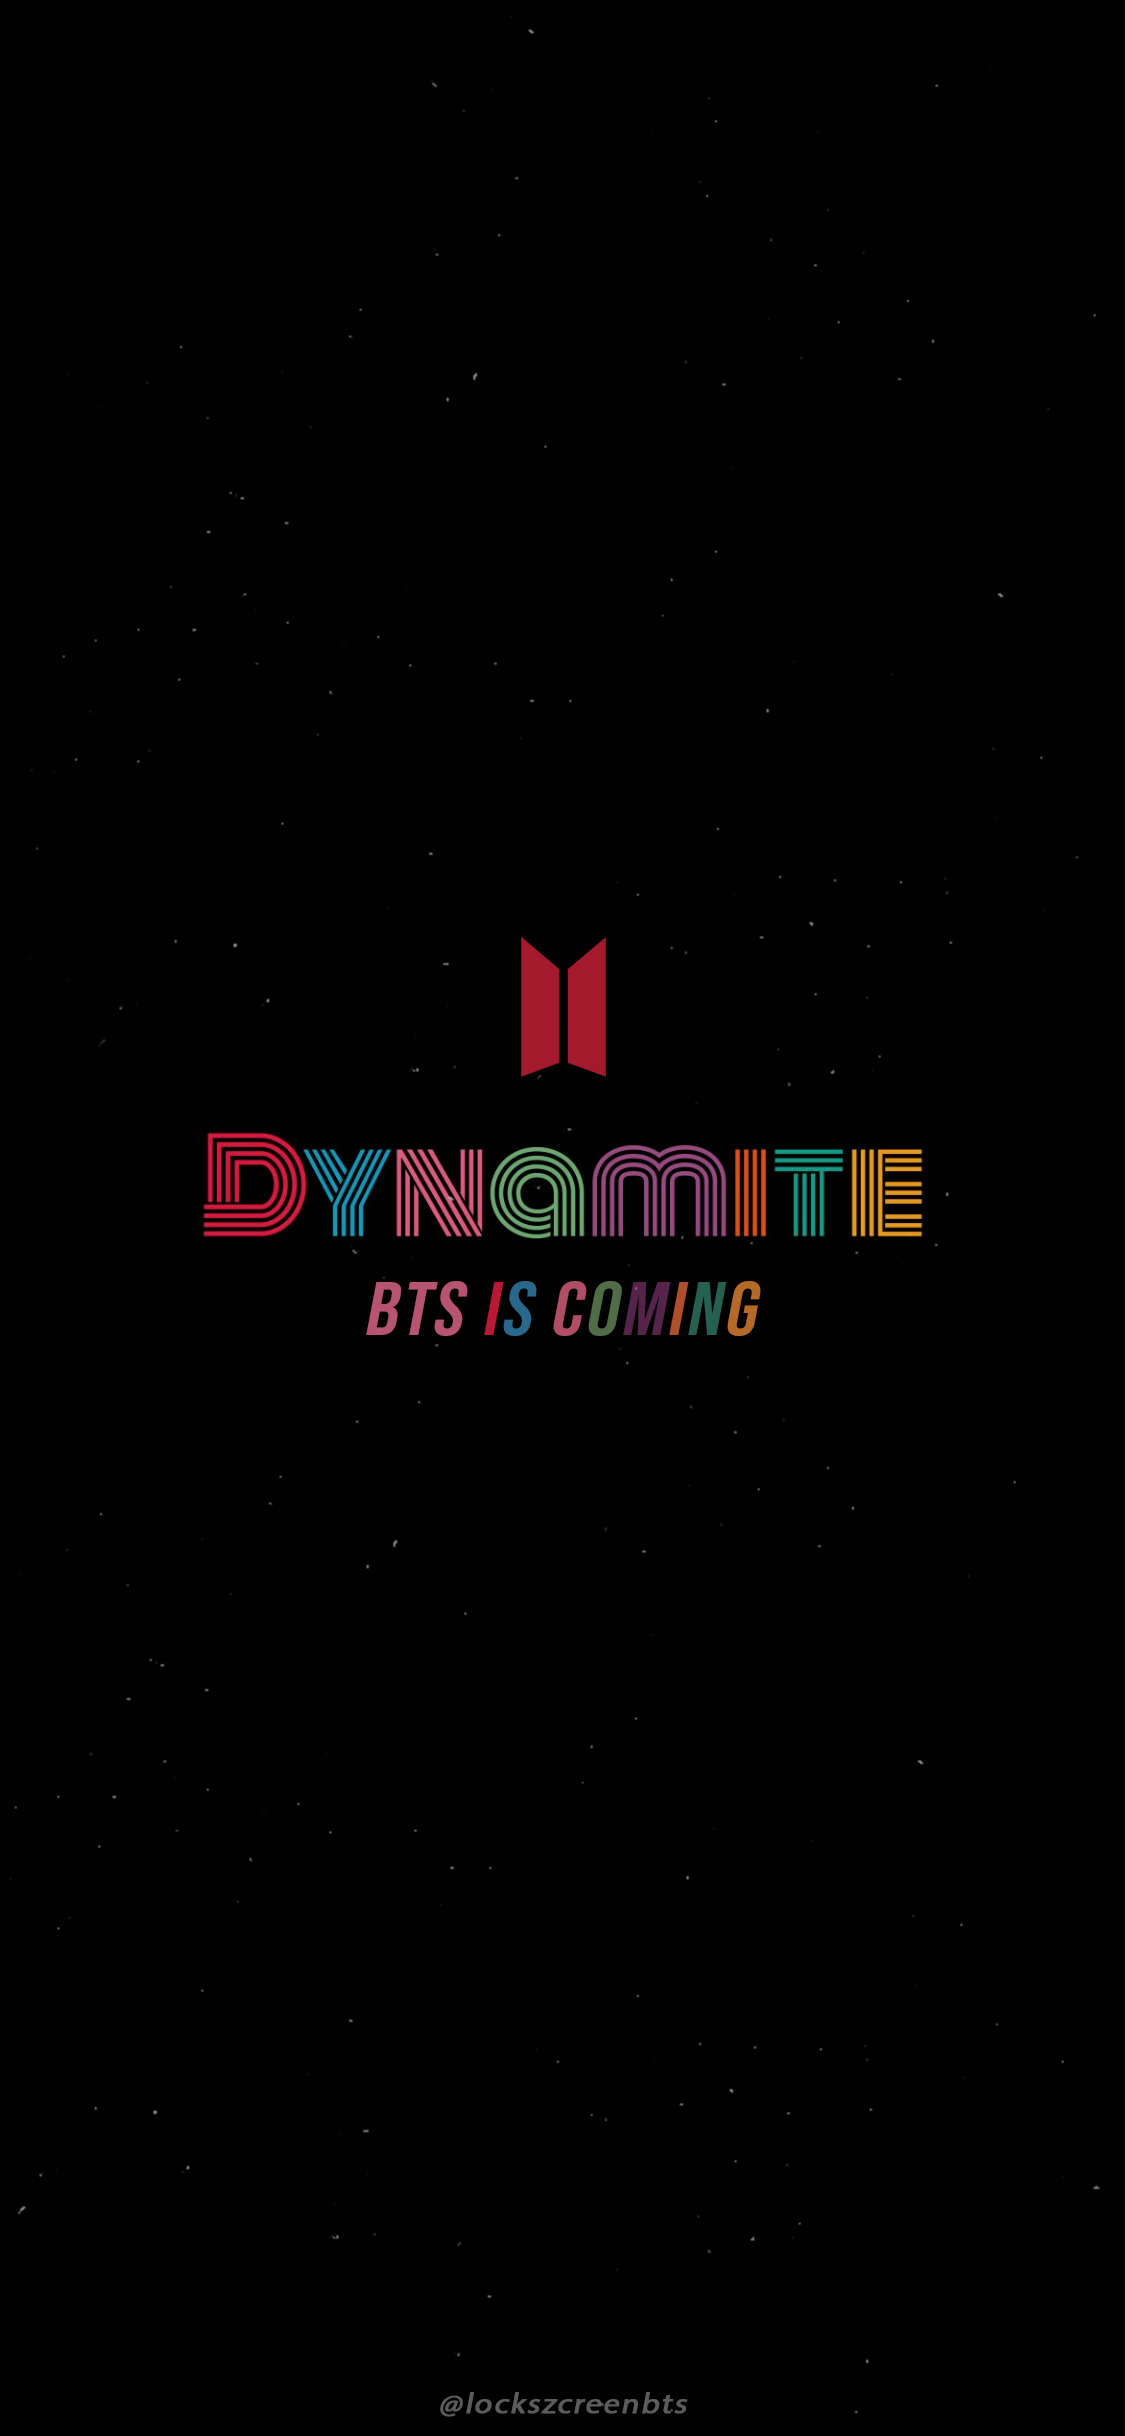 Bts Dynamite Wallpapers Wallpaper Cave